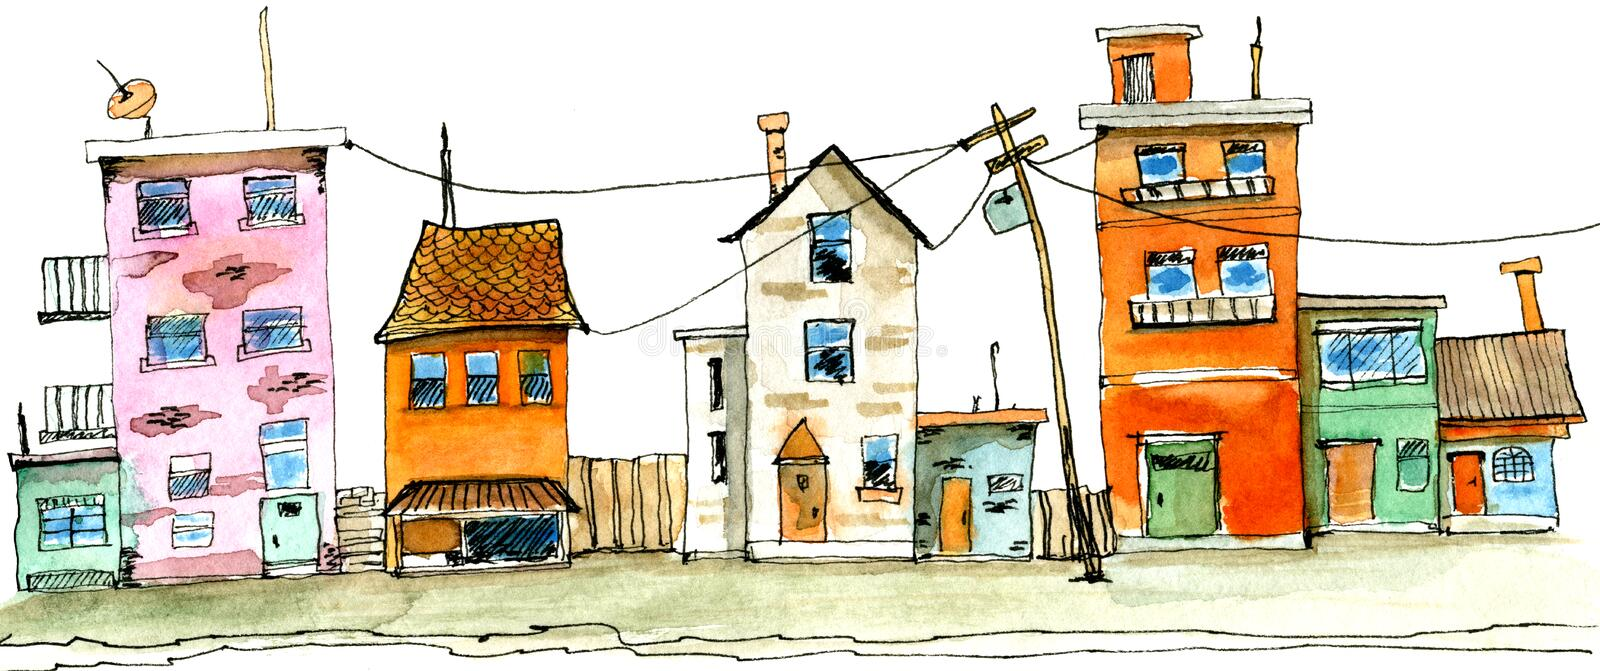 Old town street scene hand drawn watercolor illustration. Street scene in old town with colorful childish building. Watercolor illustration of cute houses on royalty free illustration